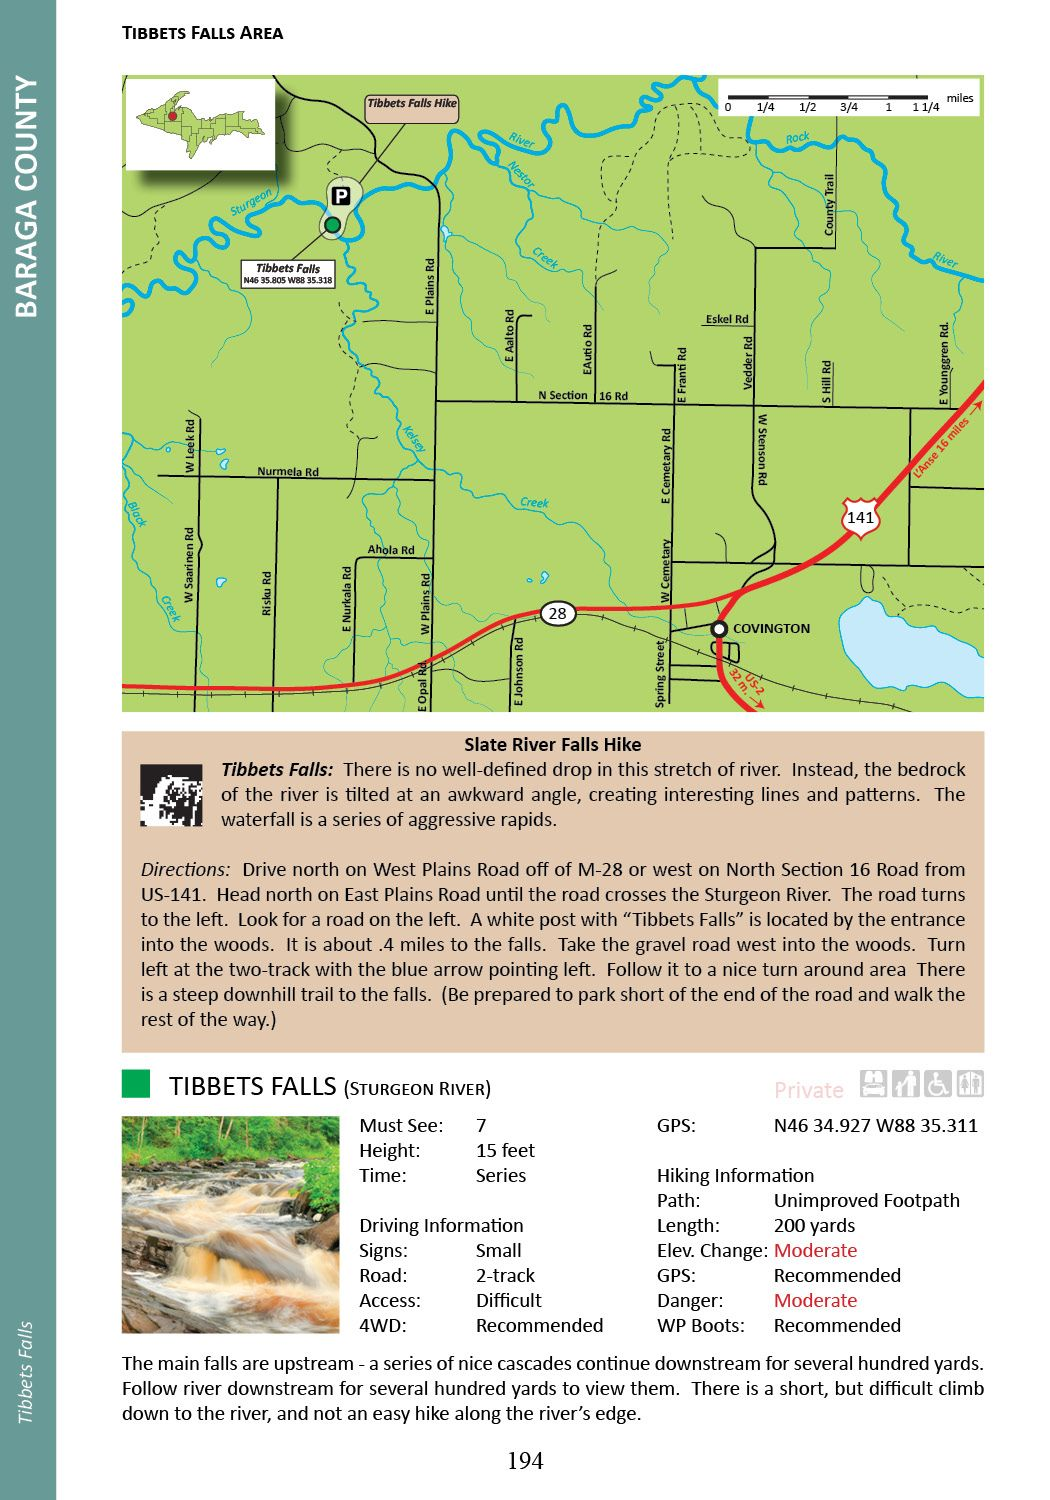 Sample page from Book 3. This page includes an area map